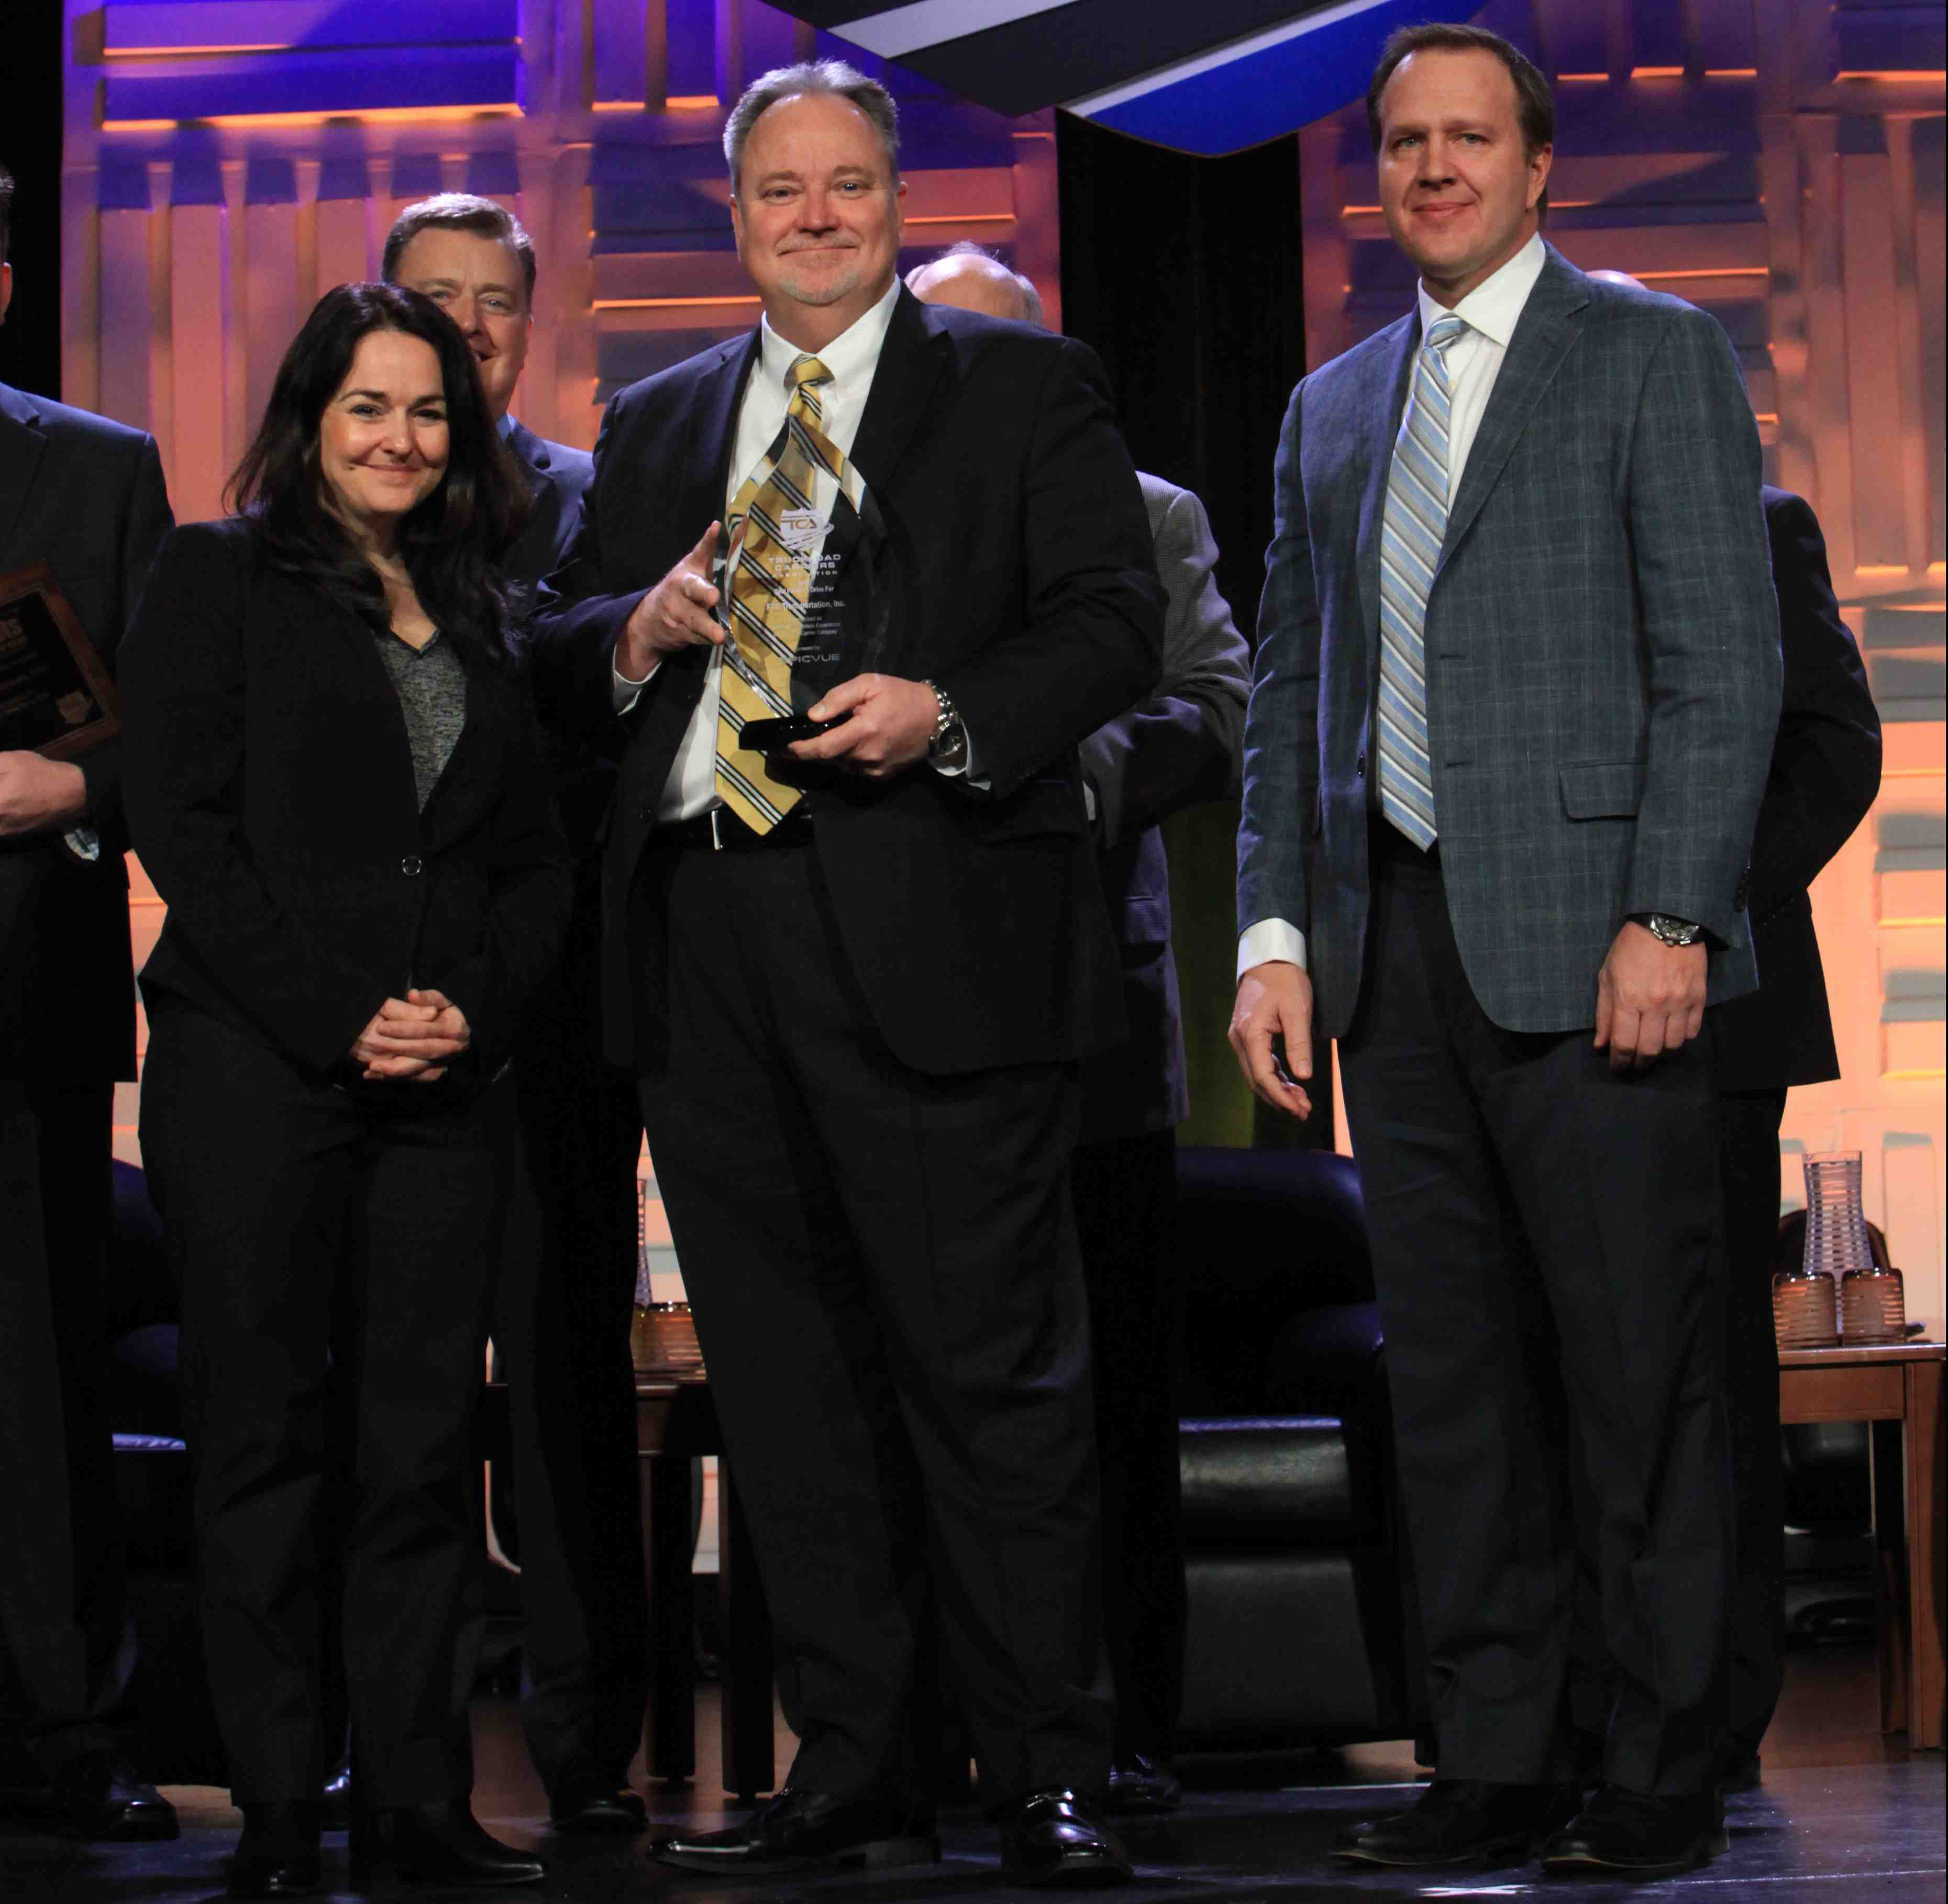 FTC Transportation was named Best Overall Fleet in the small carrier category.